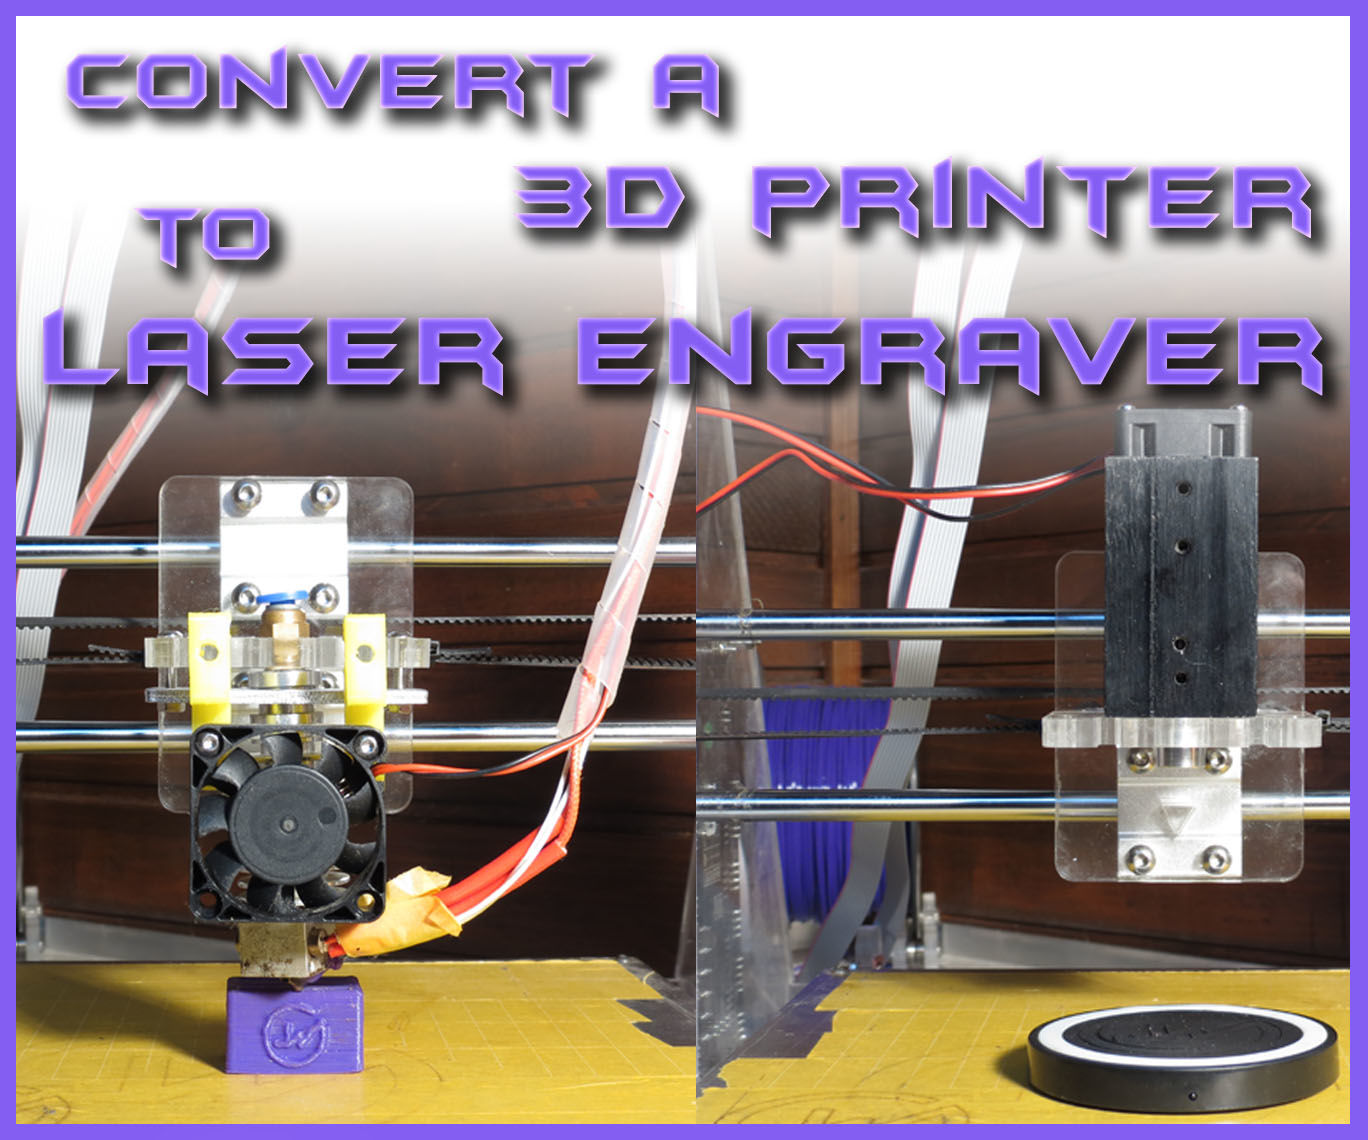 medium resolution of convert a 3d printer to laser engraver under 40 5 steps with pictures